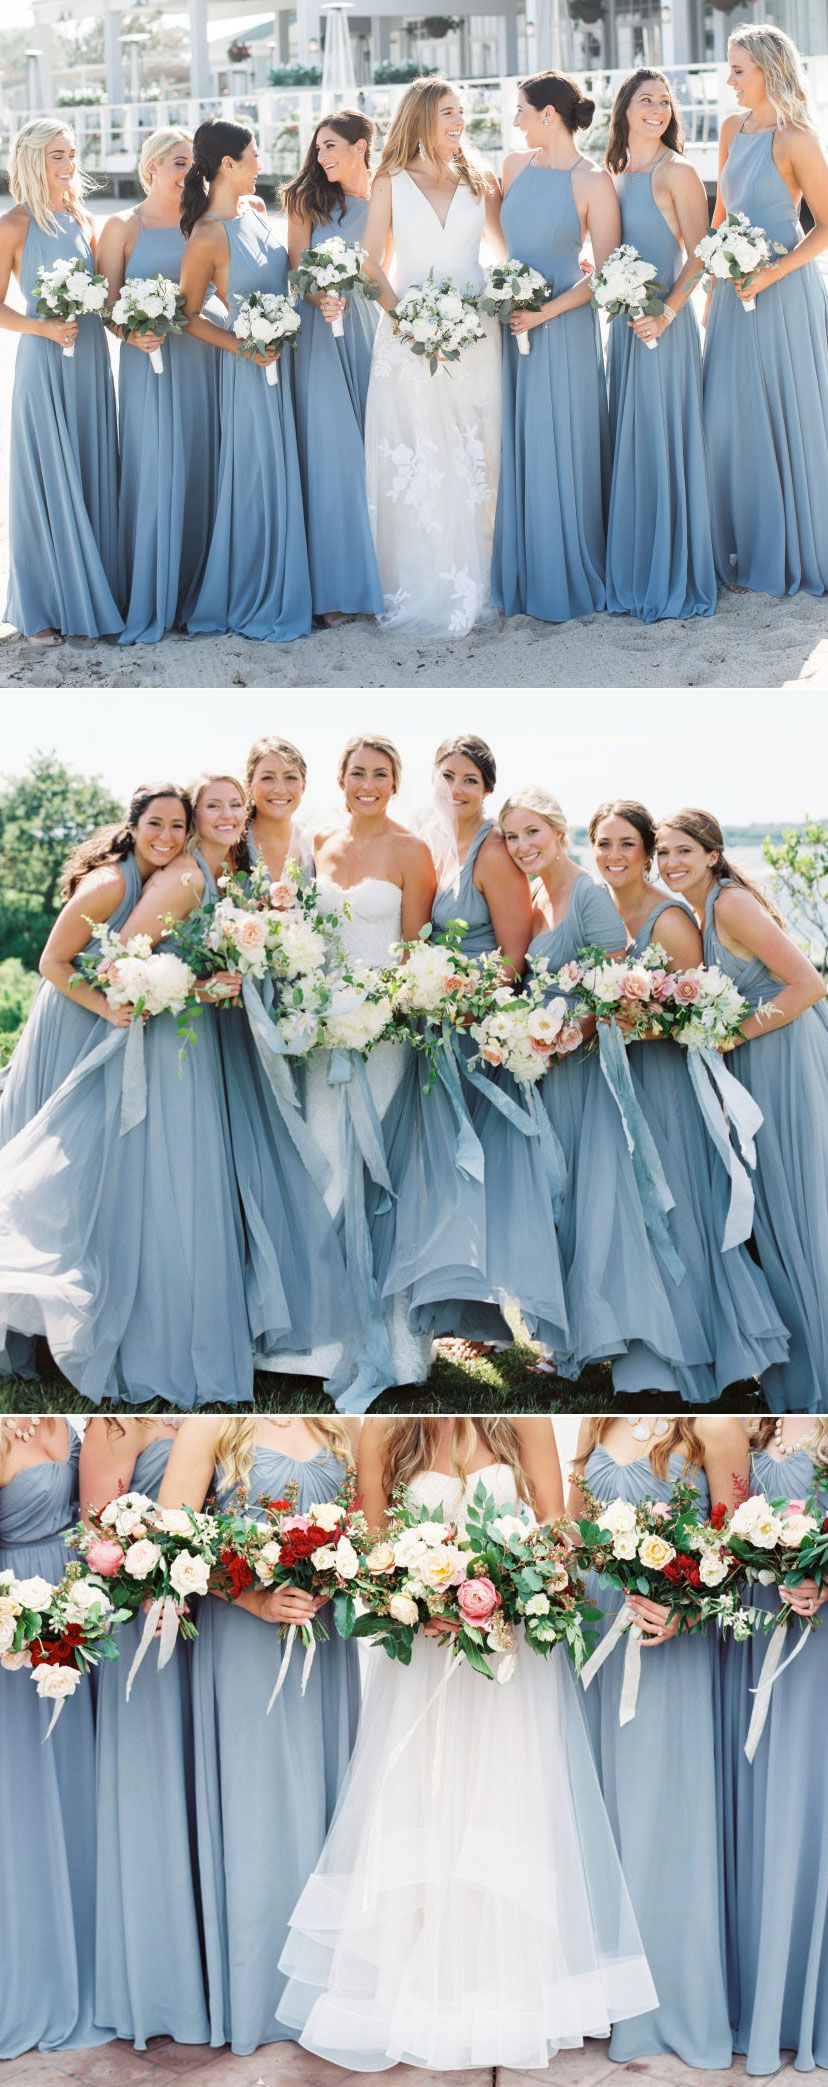 TOP 10 Dusty Blue Bridesmaid Dresses ideas on Pinterest